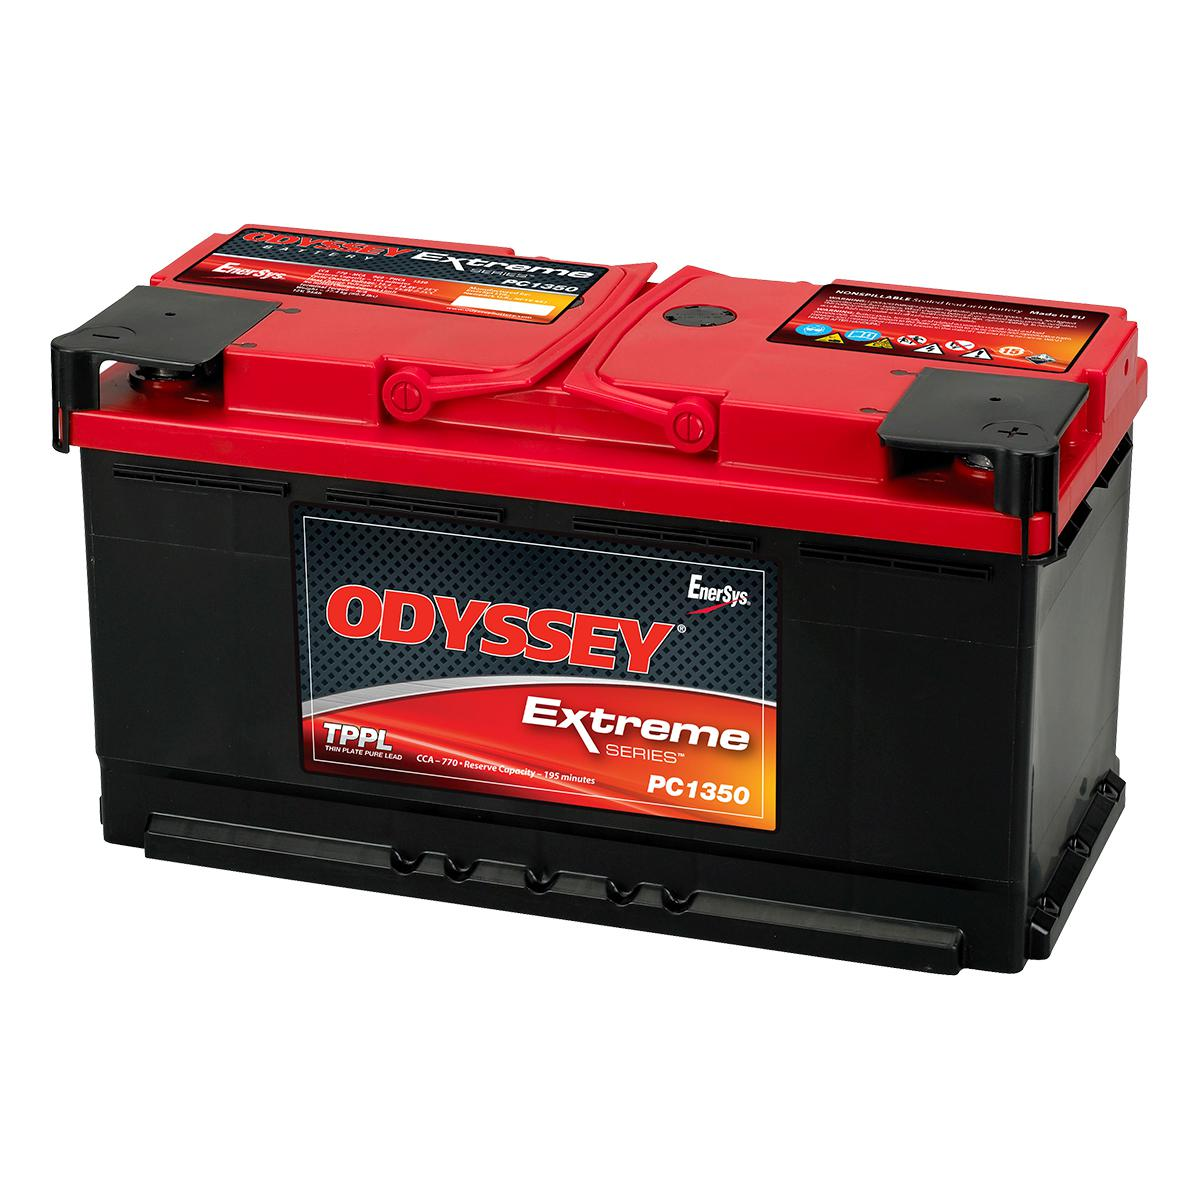 pc1350 odyssey 12v 95ah extreme series battery. Black Bedroom Furniture Sets. Home Design Ideas